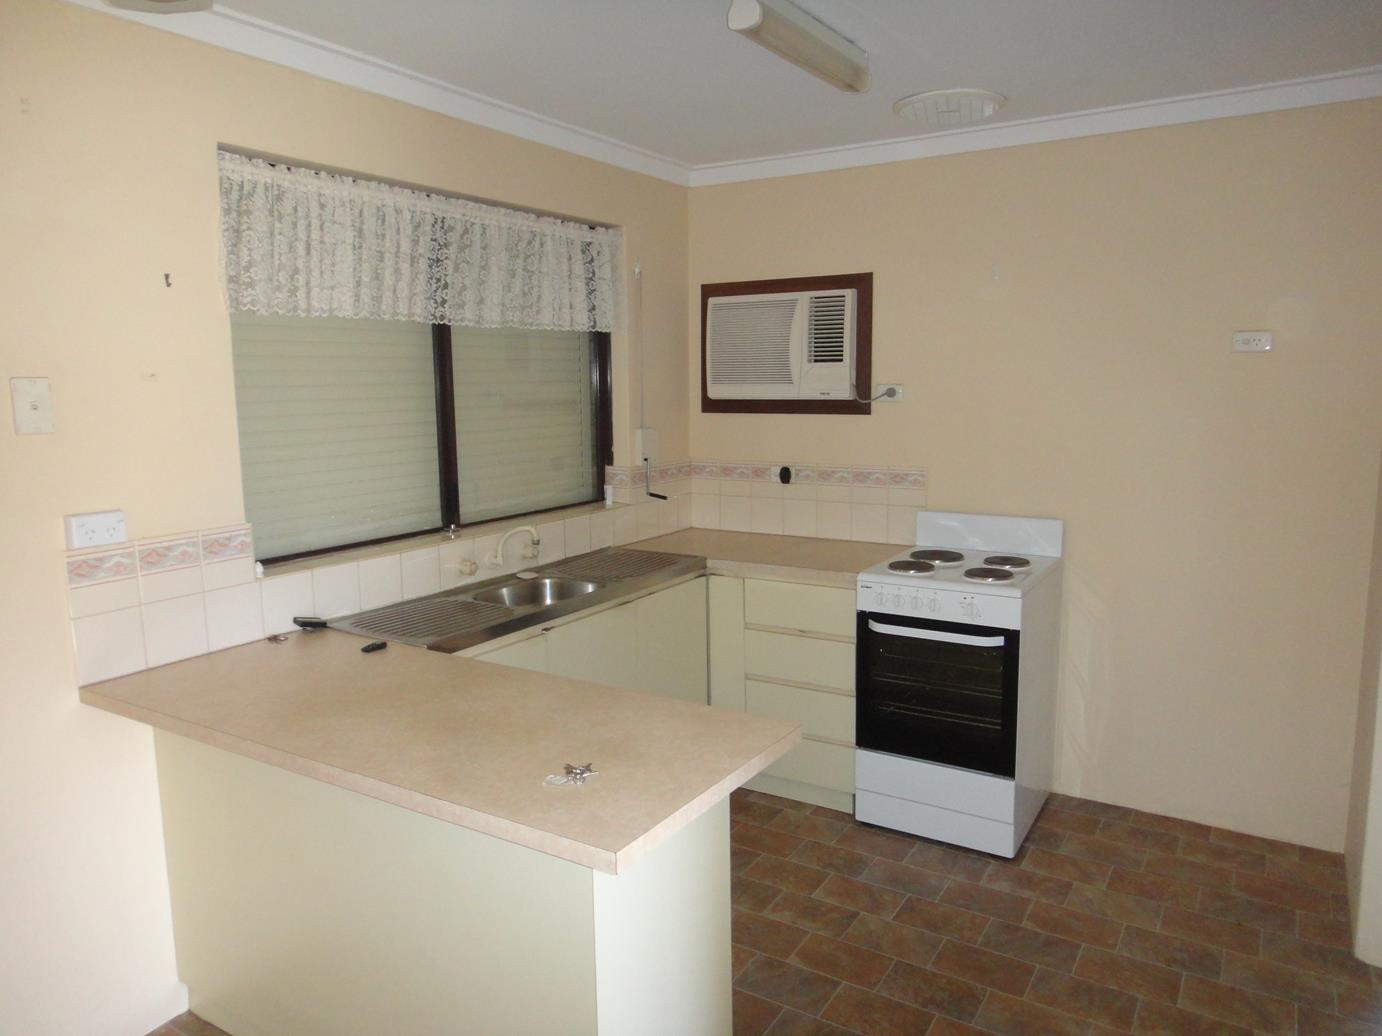 Property for rent in GOSNELLS, 21 Dwyer Cr : Attree Real Estate